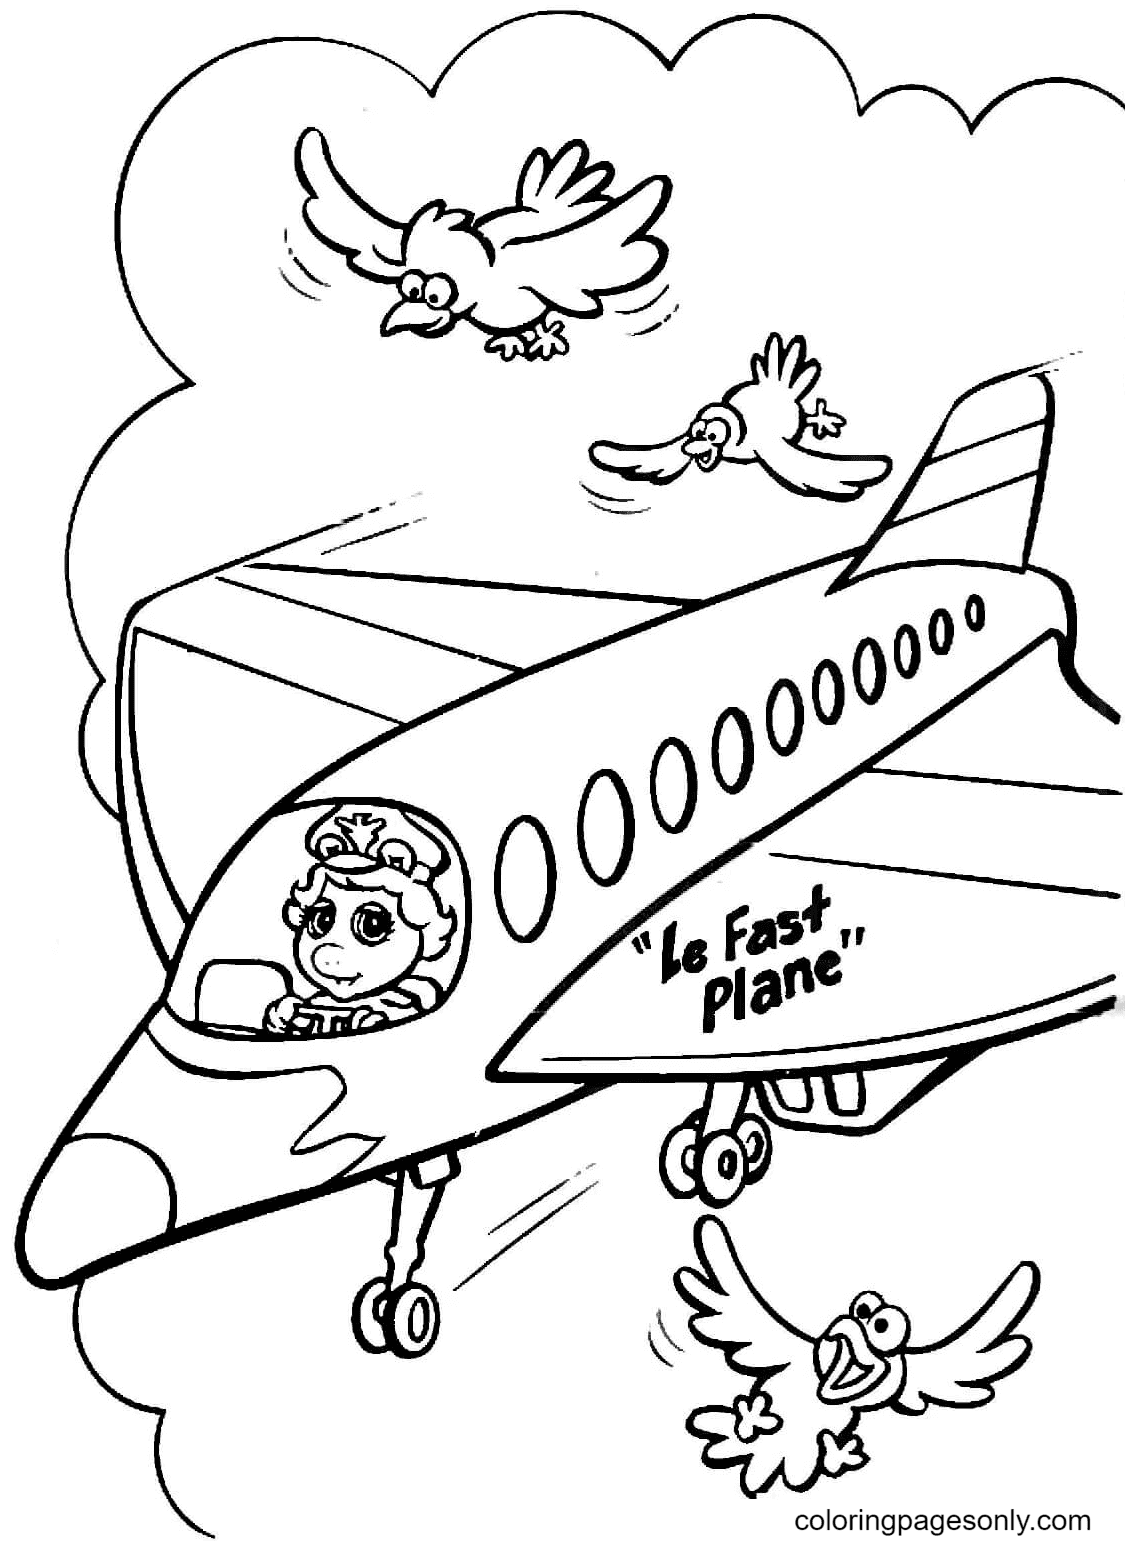 Miss Piggy pilots Concorde airliner Coloring Page